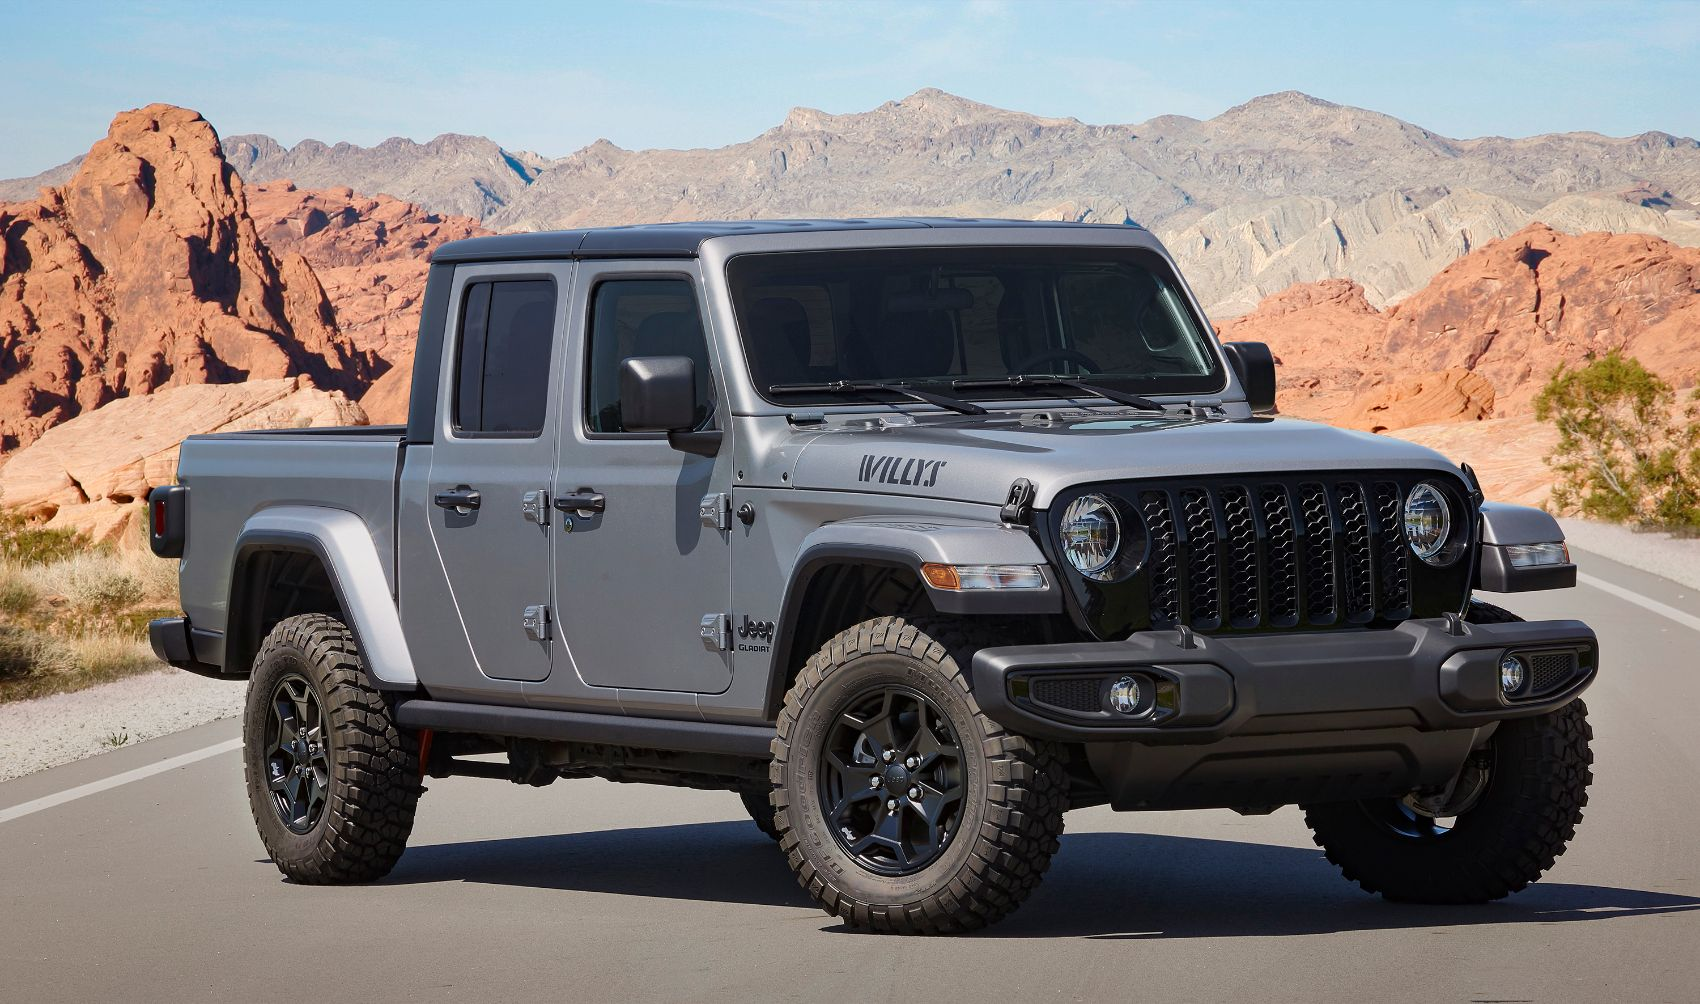 2021 Jeep Gladiator Willys: Awesome & Affordable